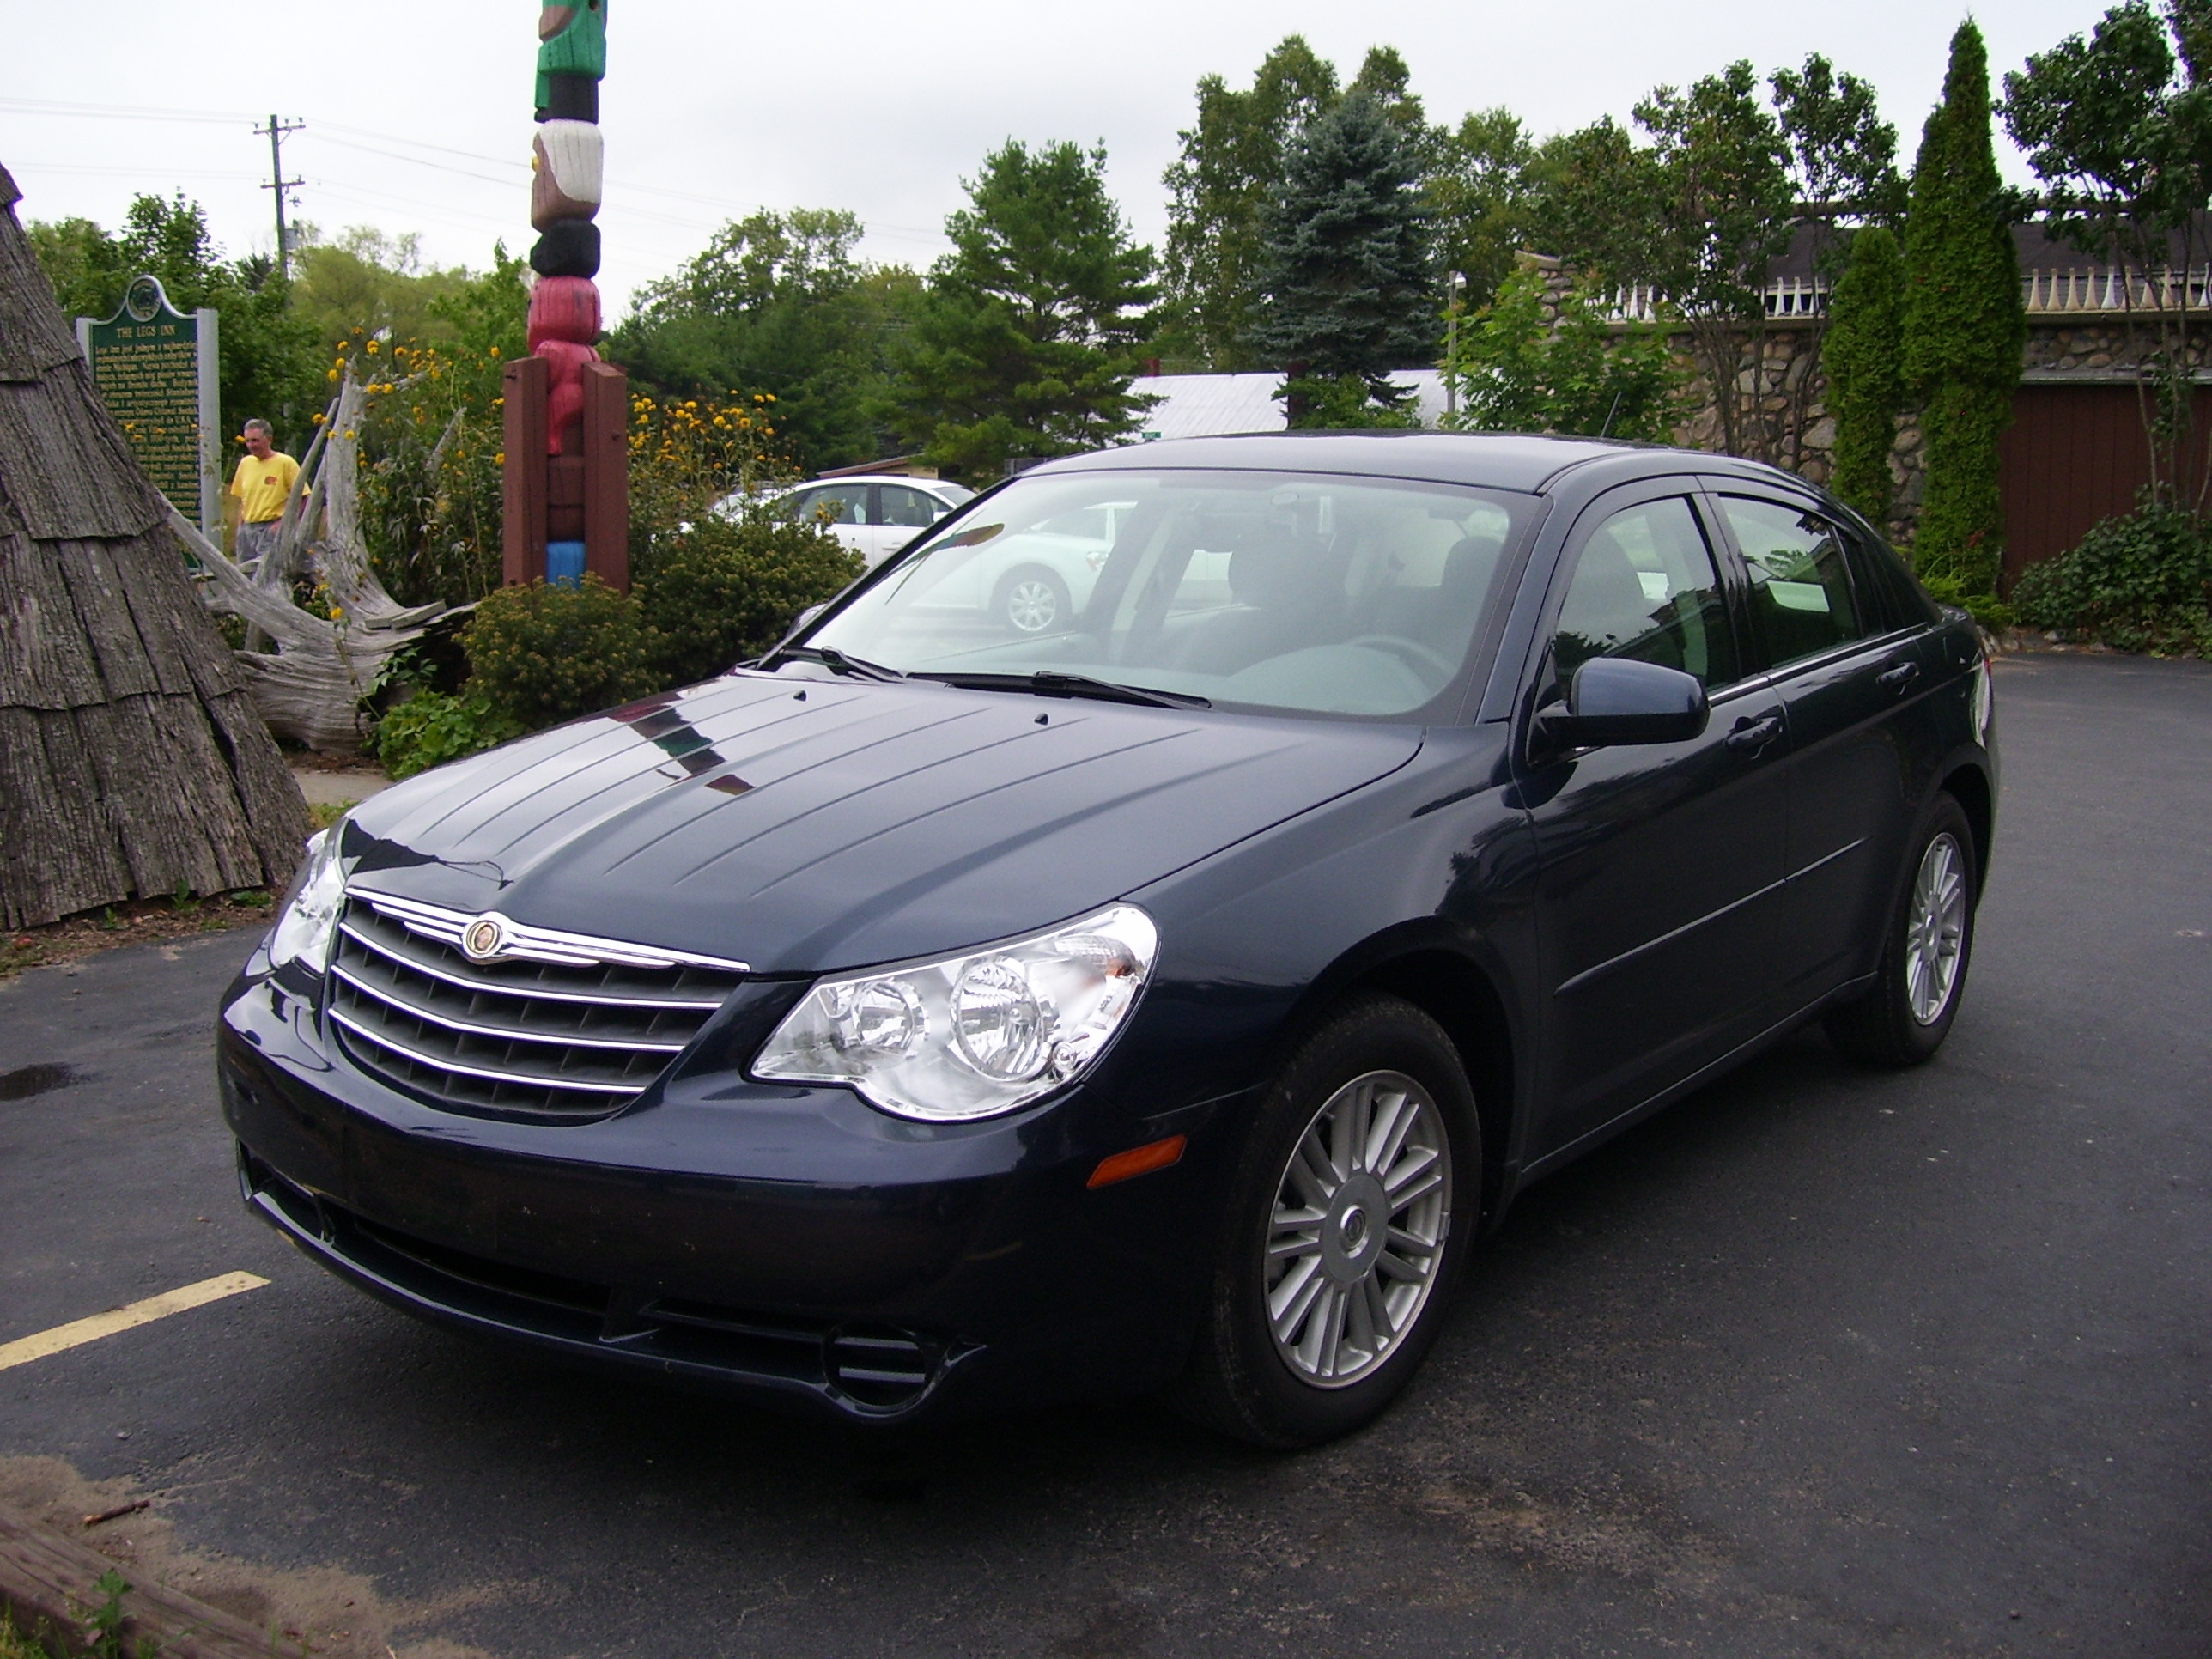 2007 Chrysler Sebring #4